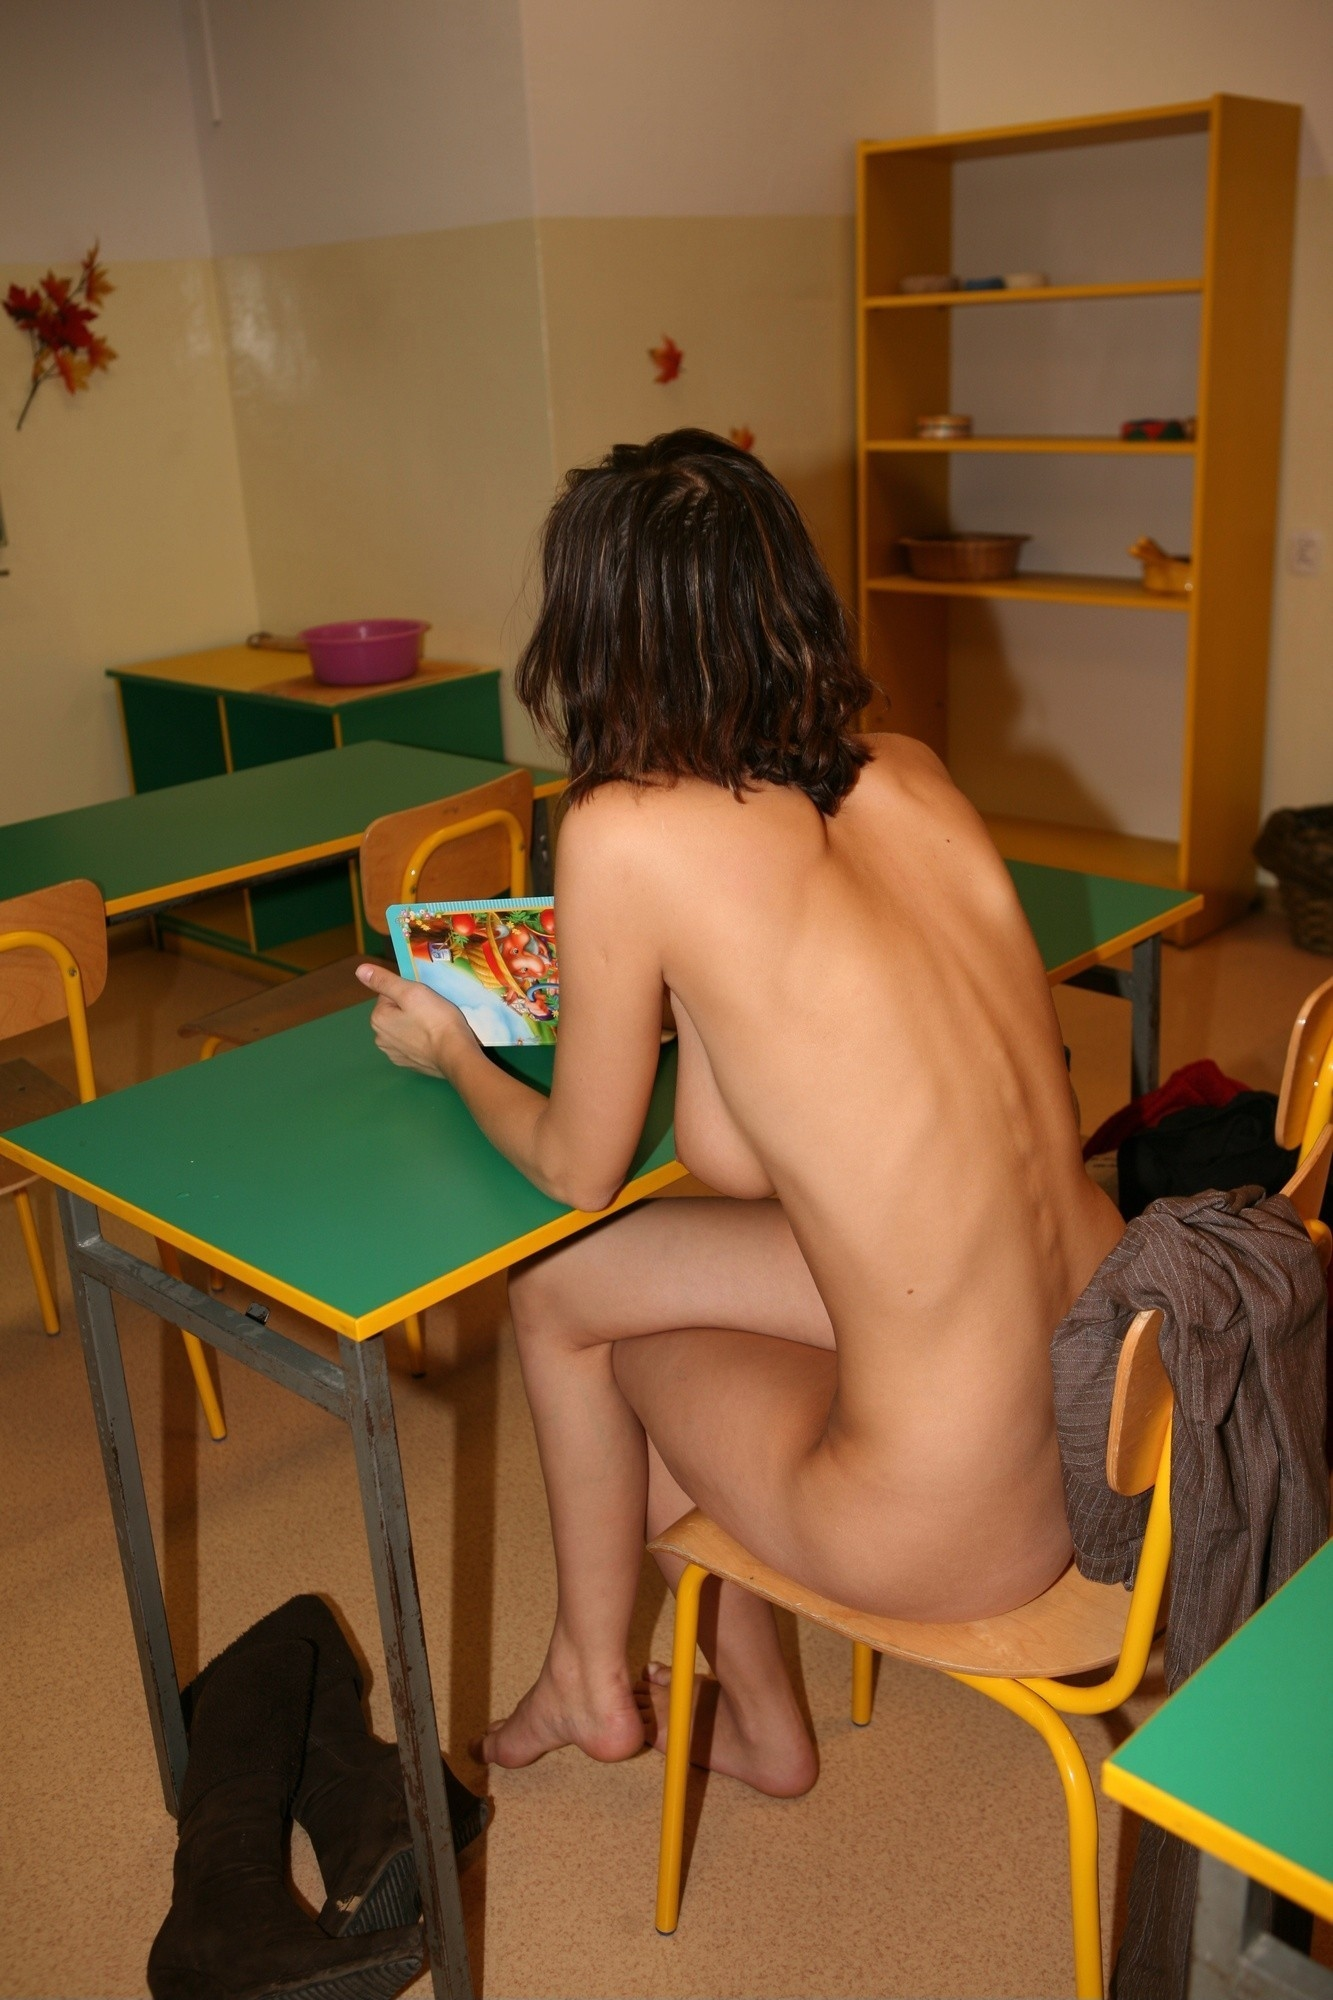 California nude school, naked woman abused amateur video